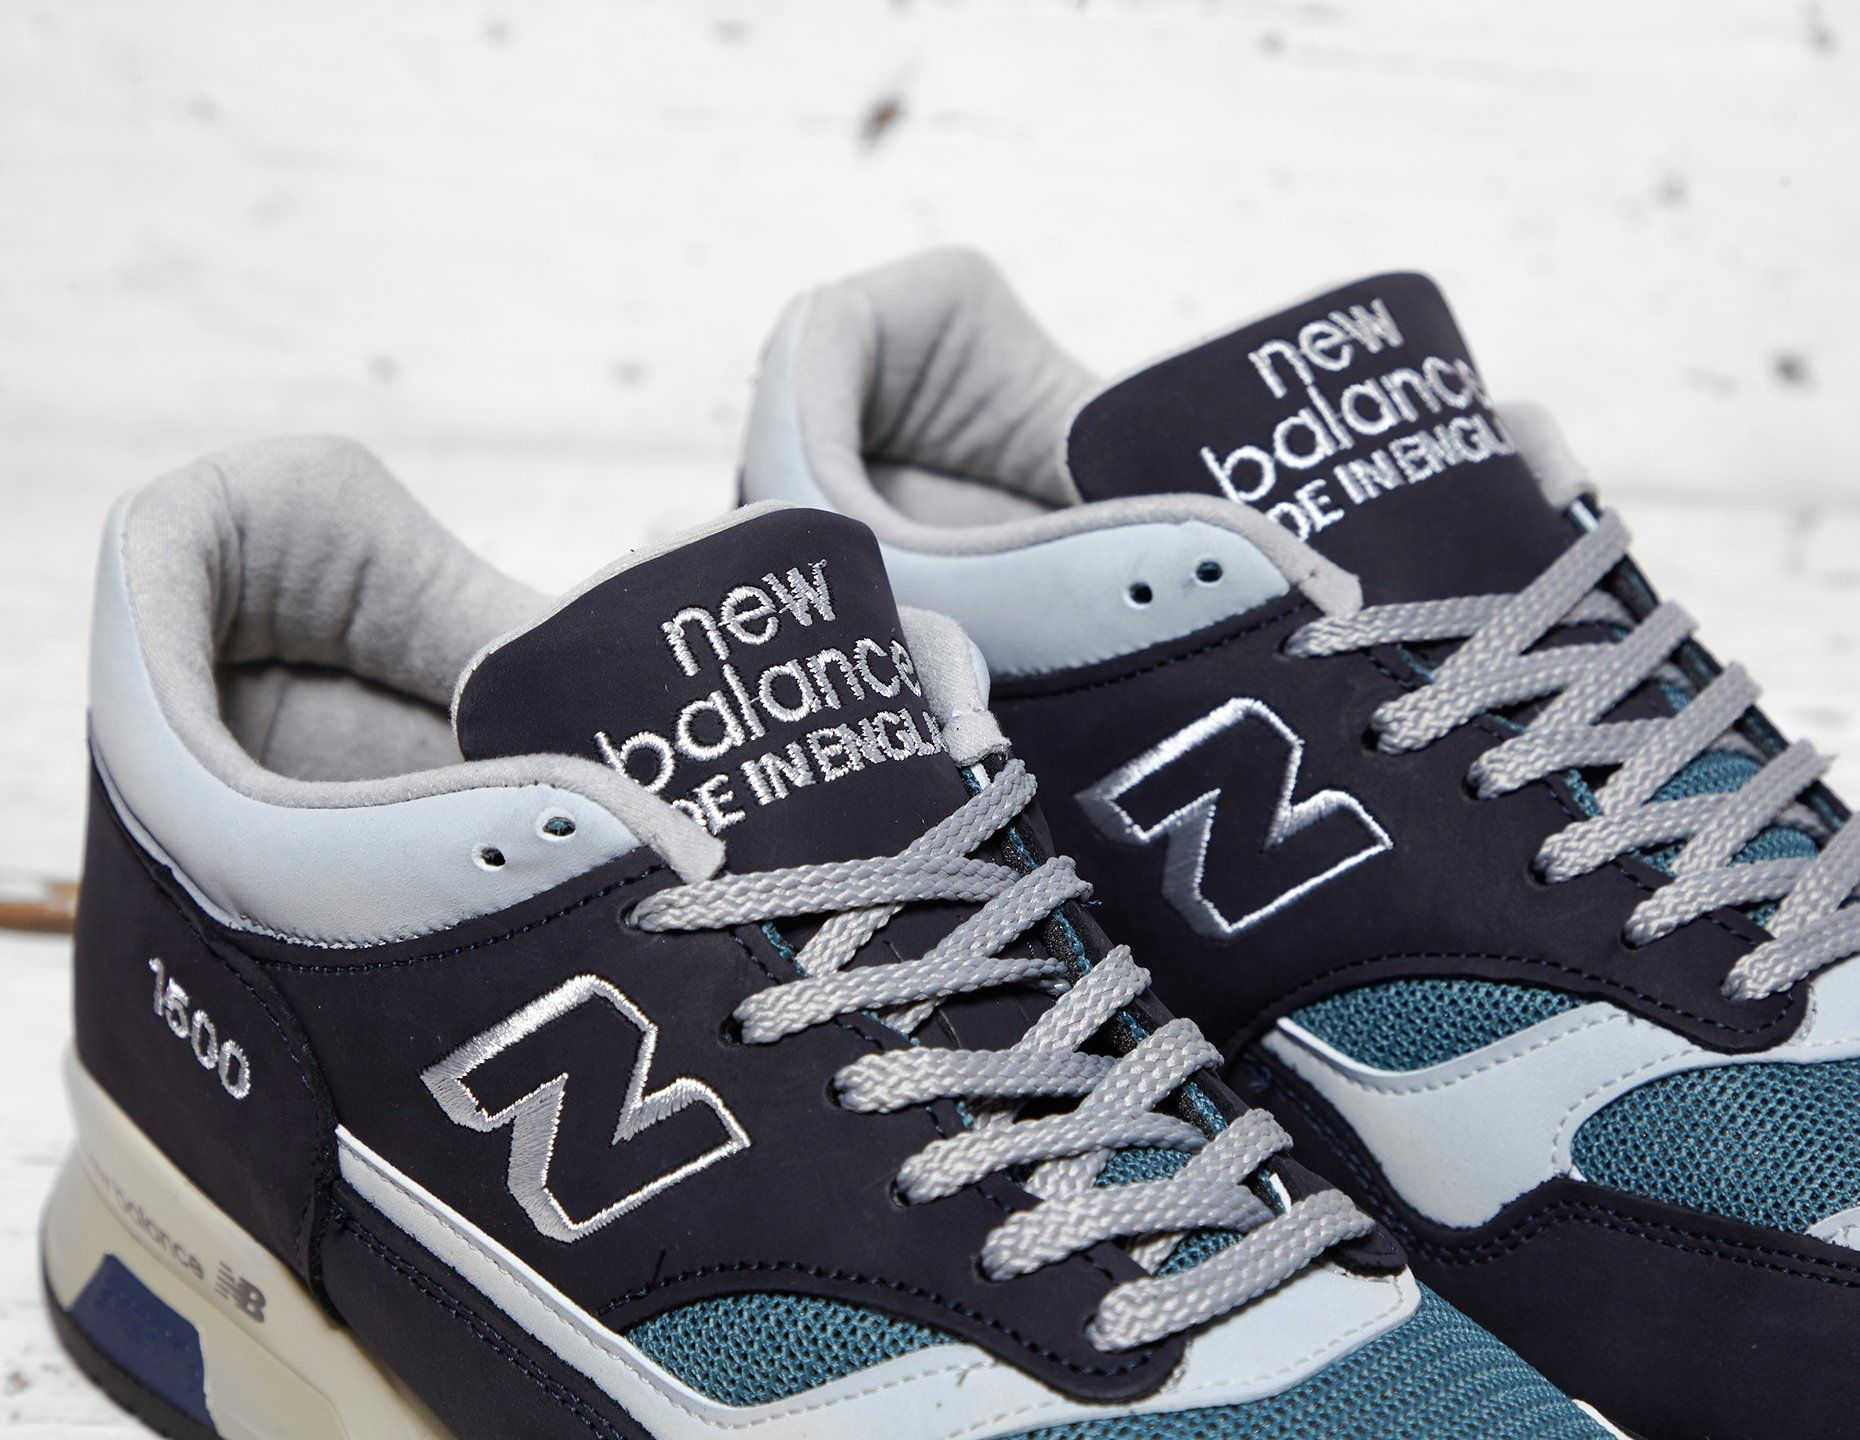 New Balance 1500 OG 'Made In England' 30th Anniversary